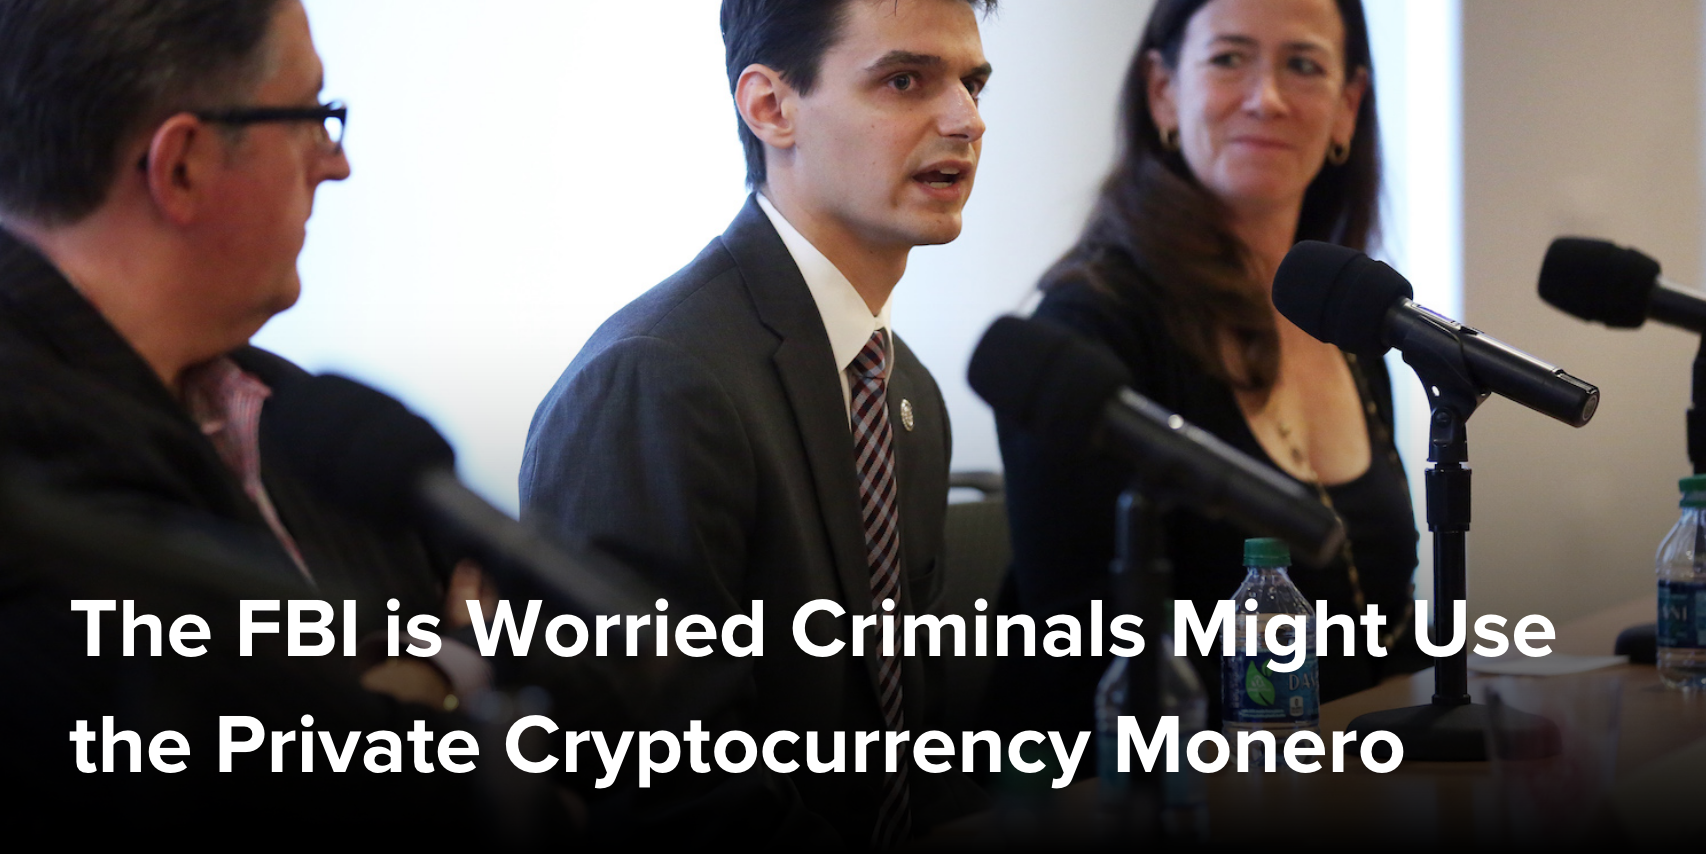 https://www.coindesk.com/fbi-concerned-about-criminal-use-of-private-cryptocurrency-monero/